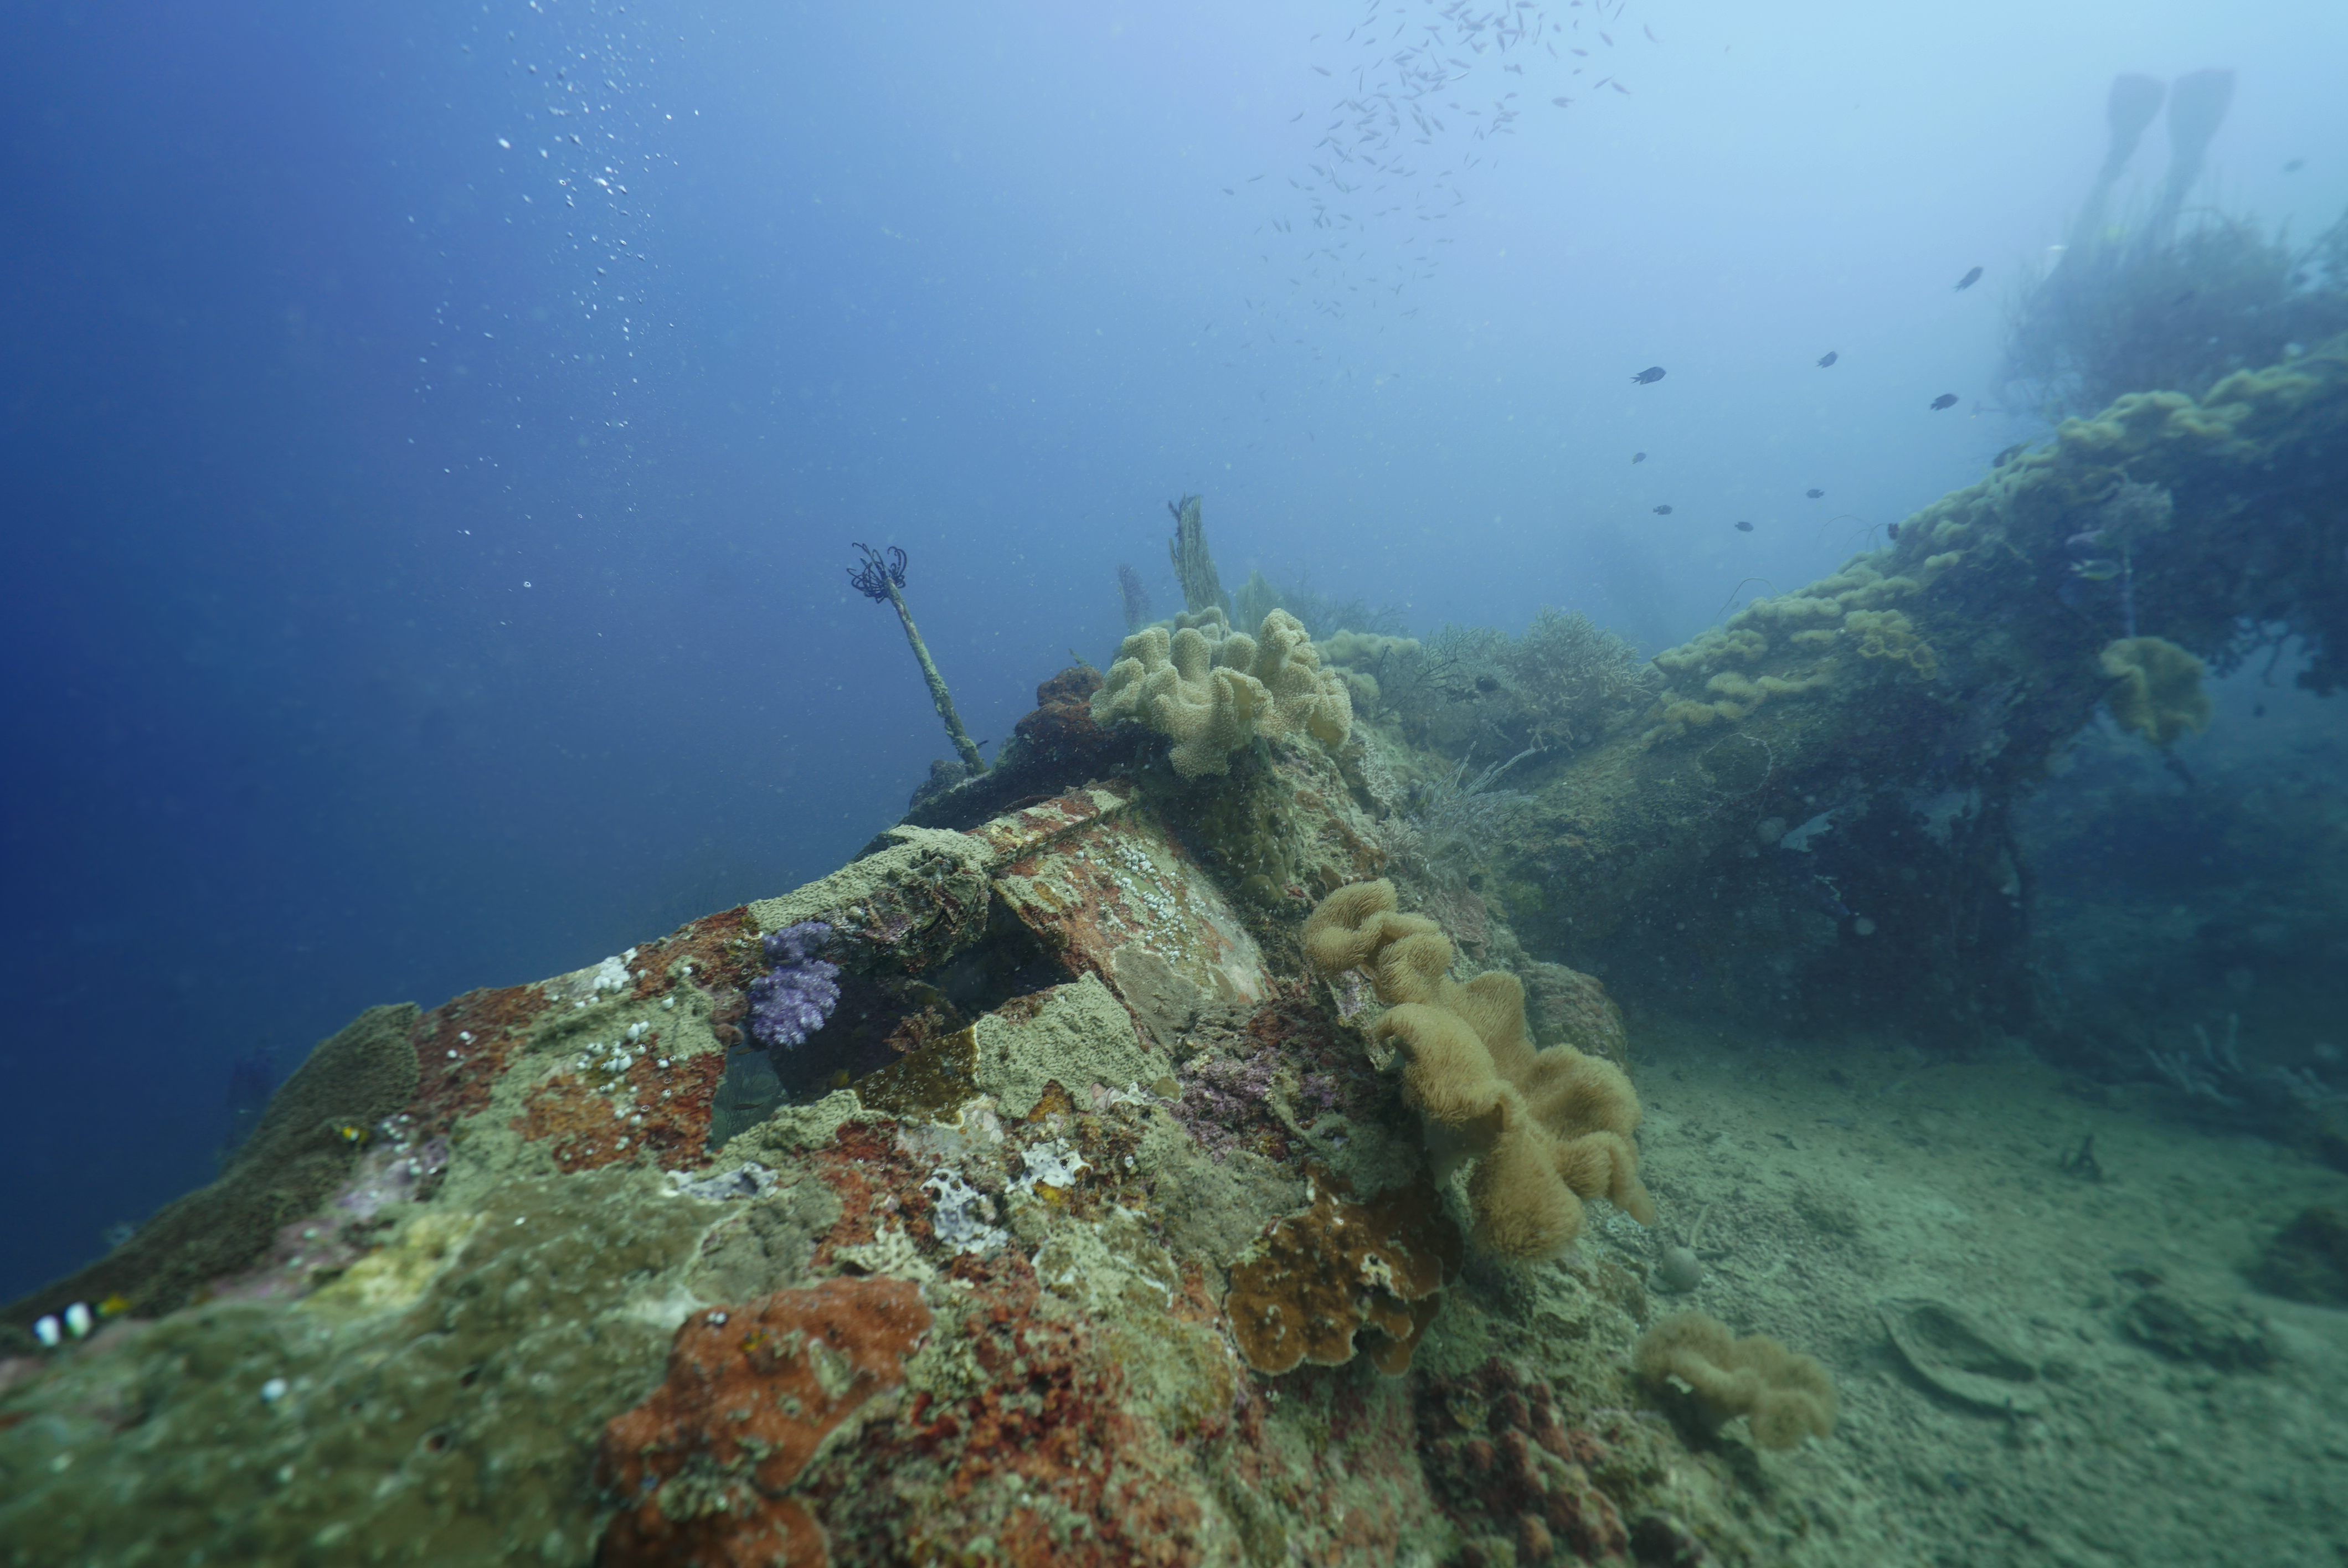 The wreckage of a B-25 bomber documented by Project Recover in the waters of Papua New Guinea.